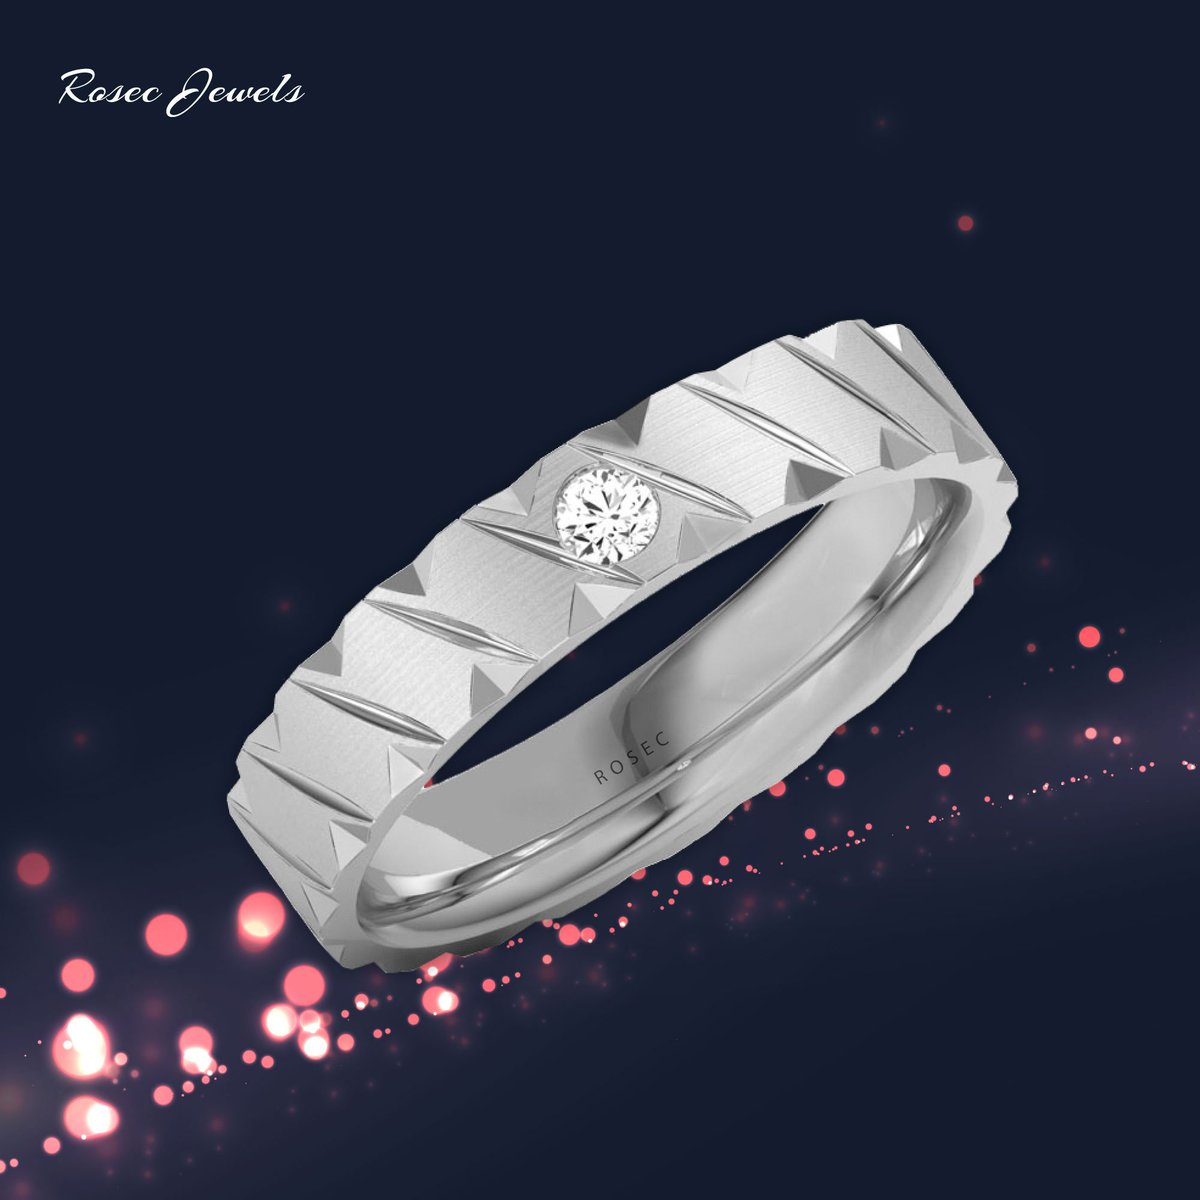 Celebrate your momentous infinity love day with ROSE_JEWELS. This new setting is a sparkling expression of true love. #Rosec #Rosecjewellery #trending #beinghumanjewellery #DAISEY #jewelleryblogger #CustomJewelry #gemporia #jewelleryaddict #LuxuryJewelry #focus #goldsmith #chanel